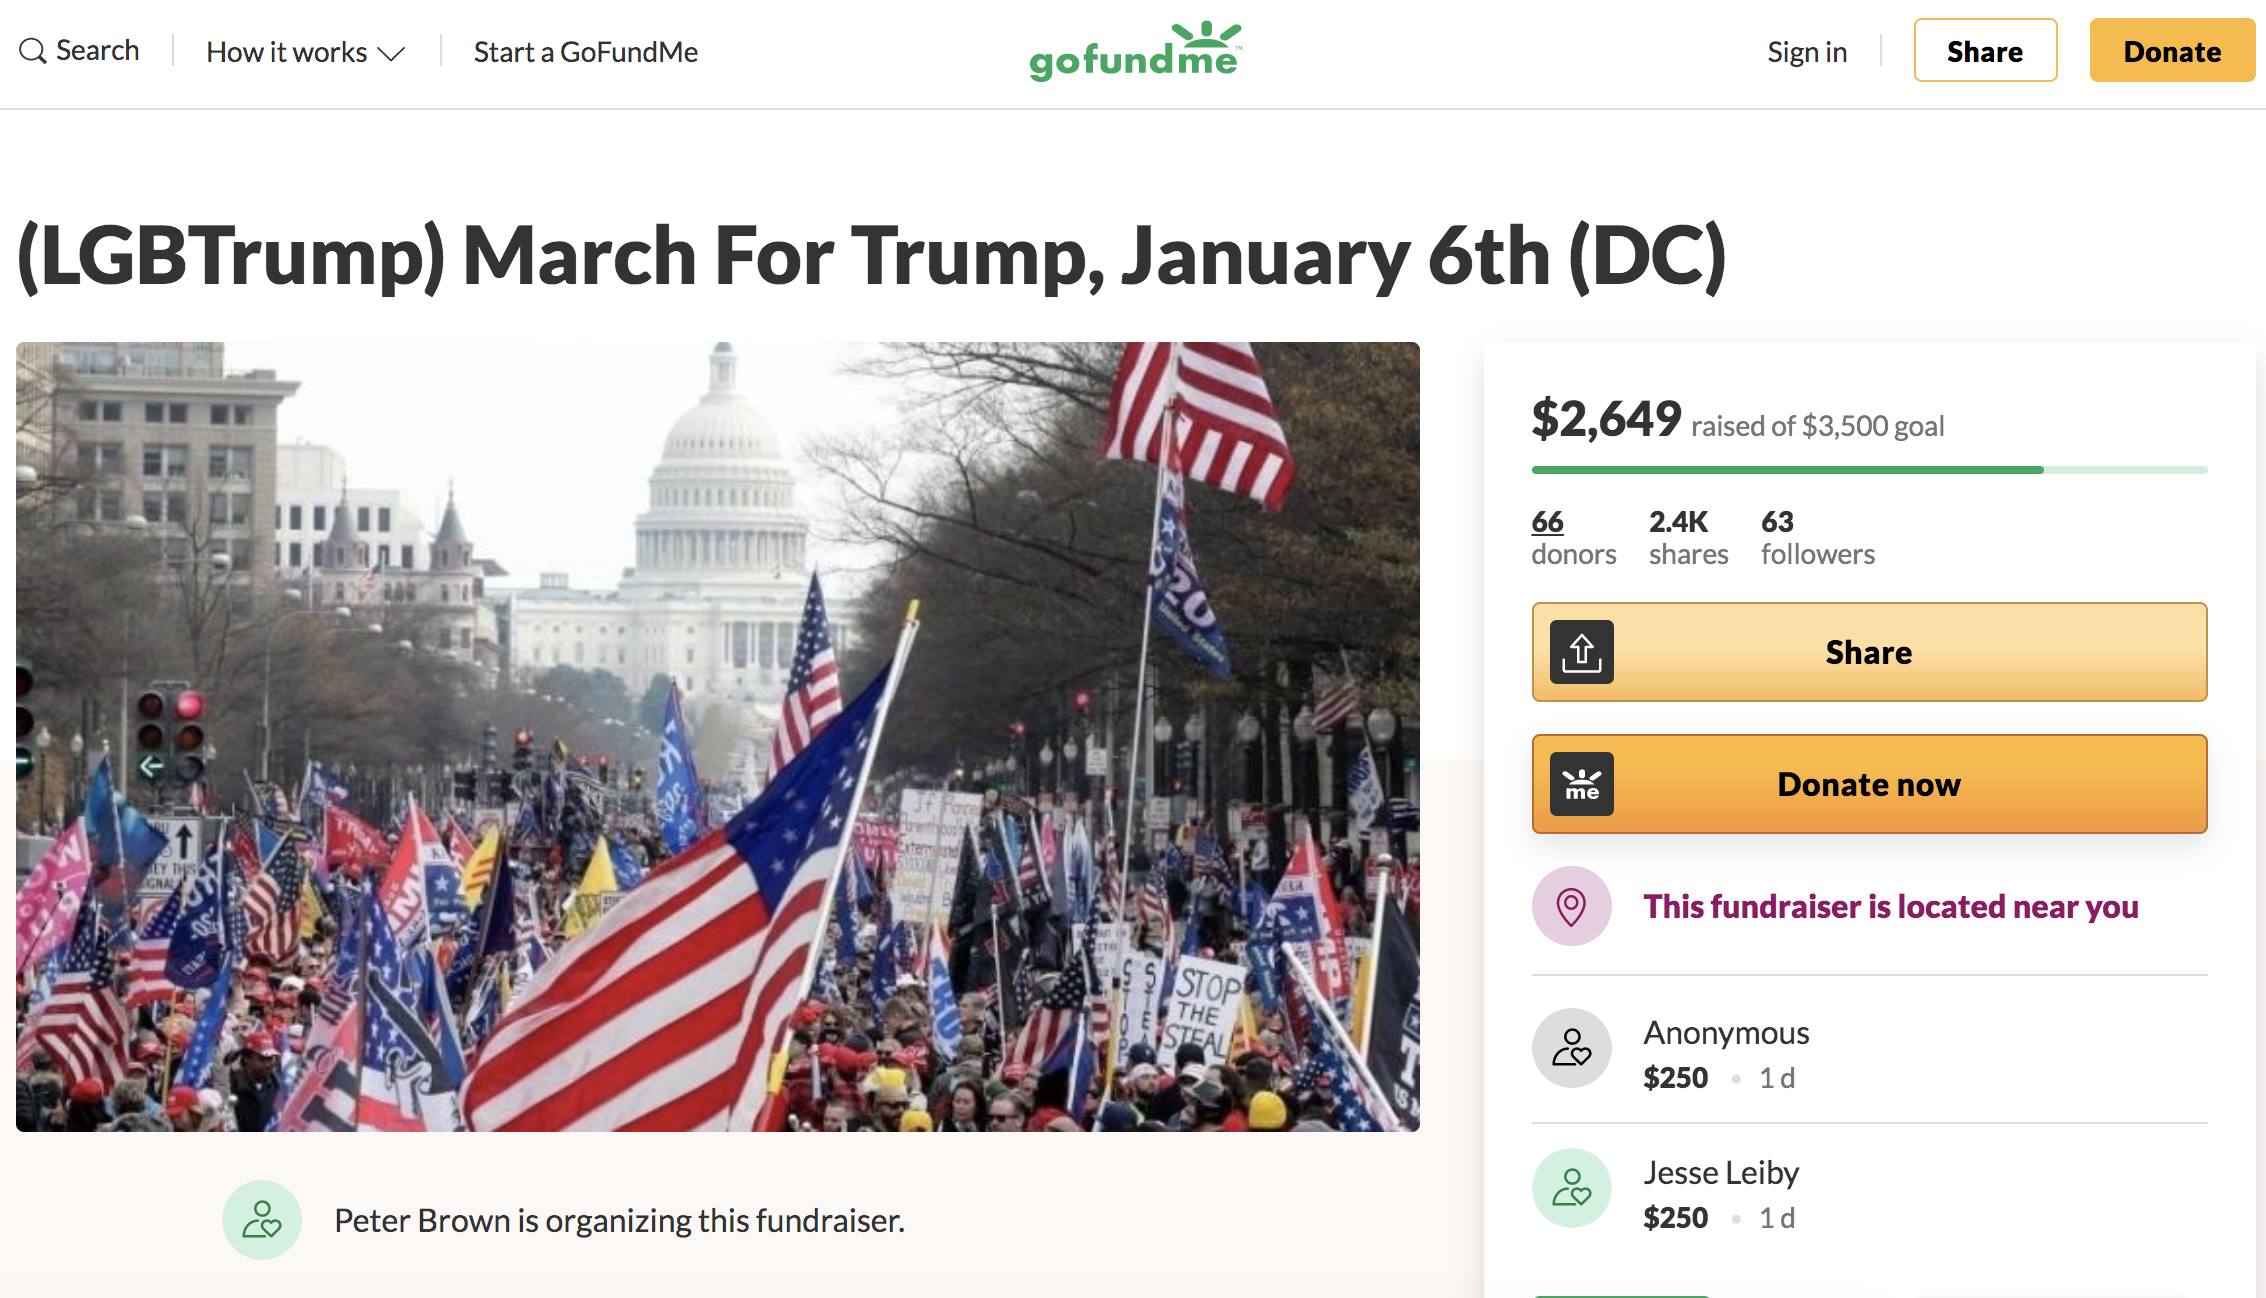 A GoFundMe page called LGBTrump March for Trump